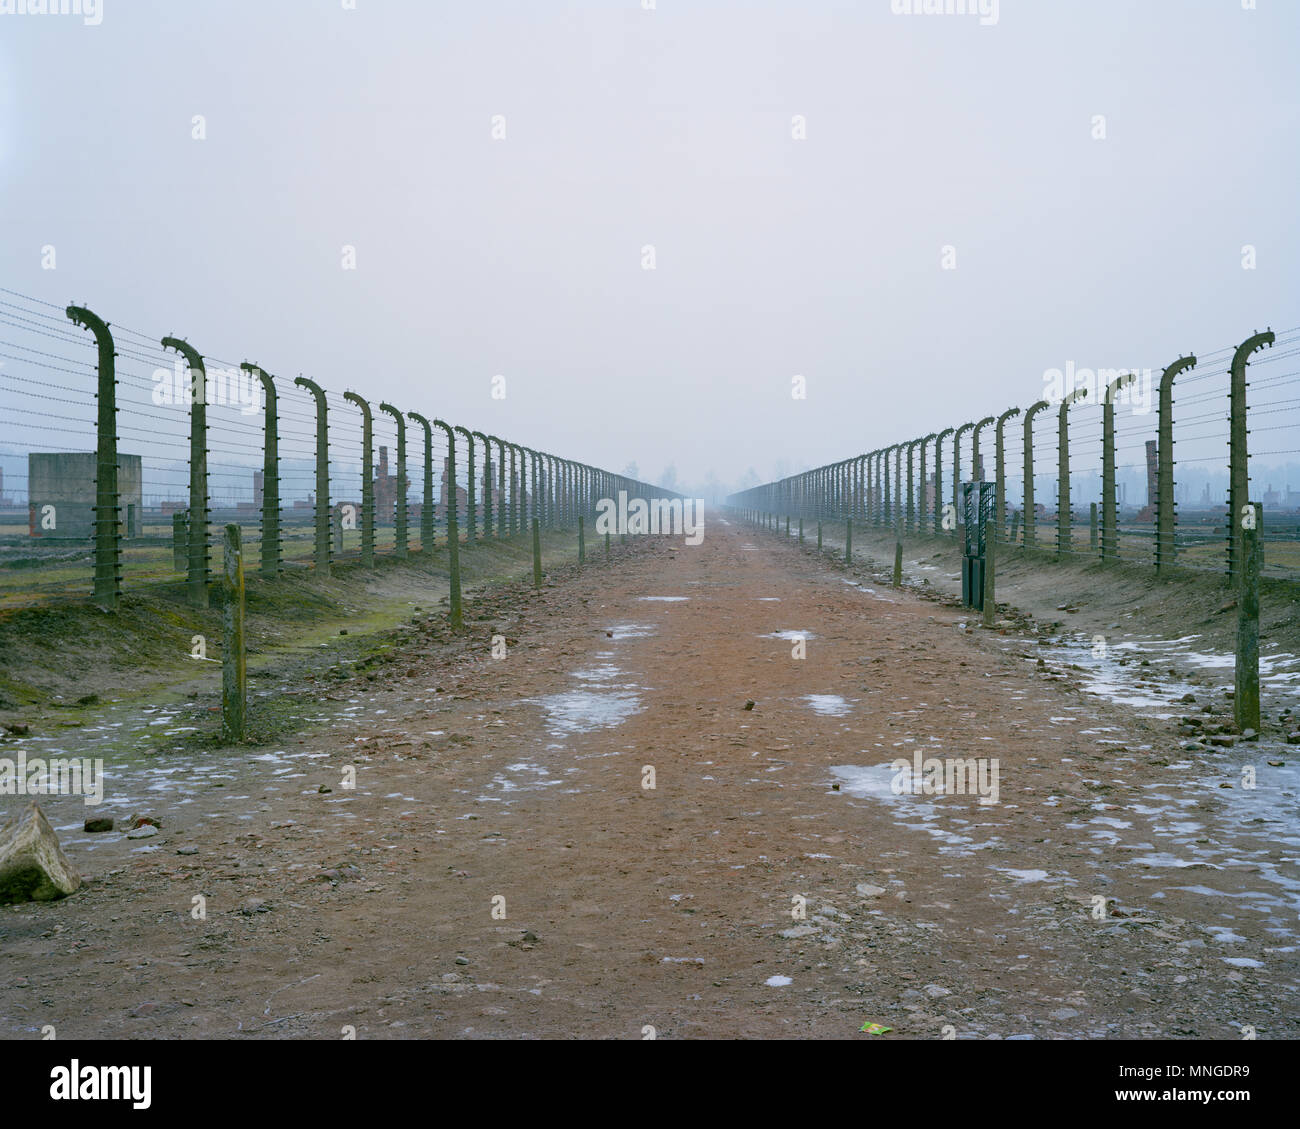 Photograph © John Angerson Liberated on January 27th 1945. Auschwitz II Birkenau concentration camp in the town South West Poland. - Stock Image